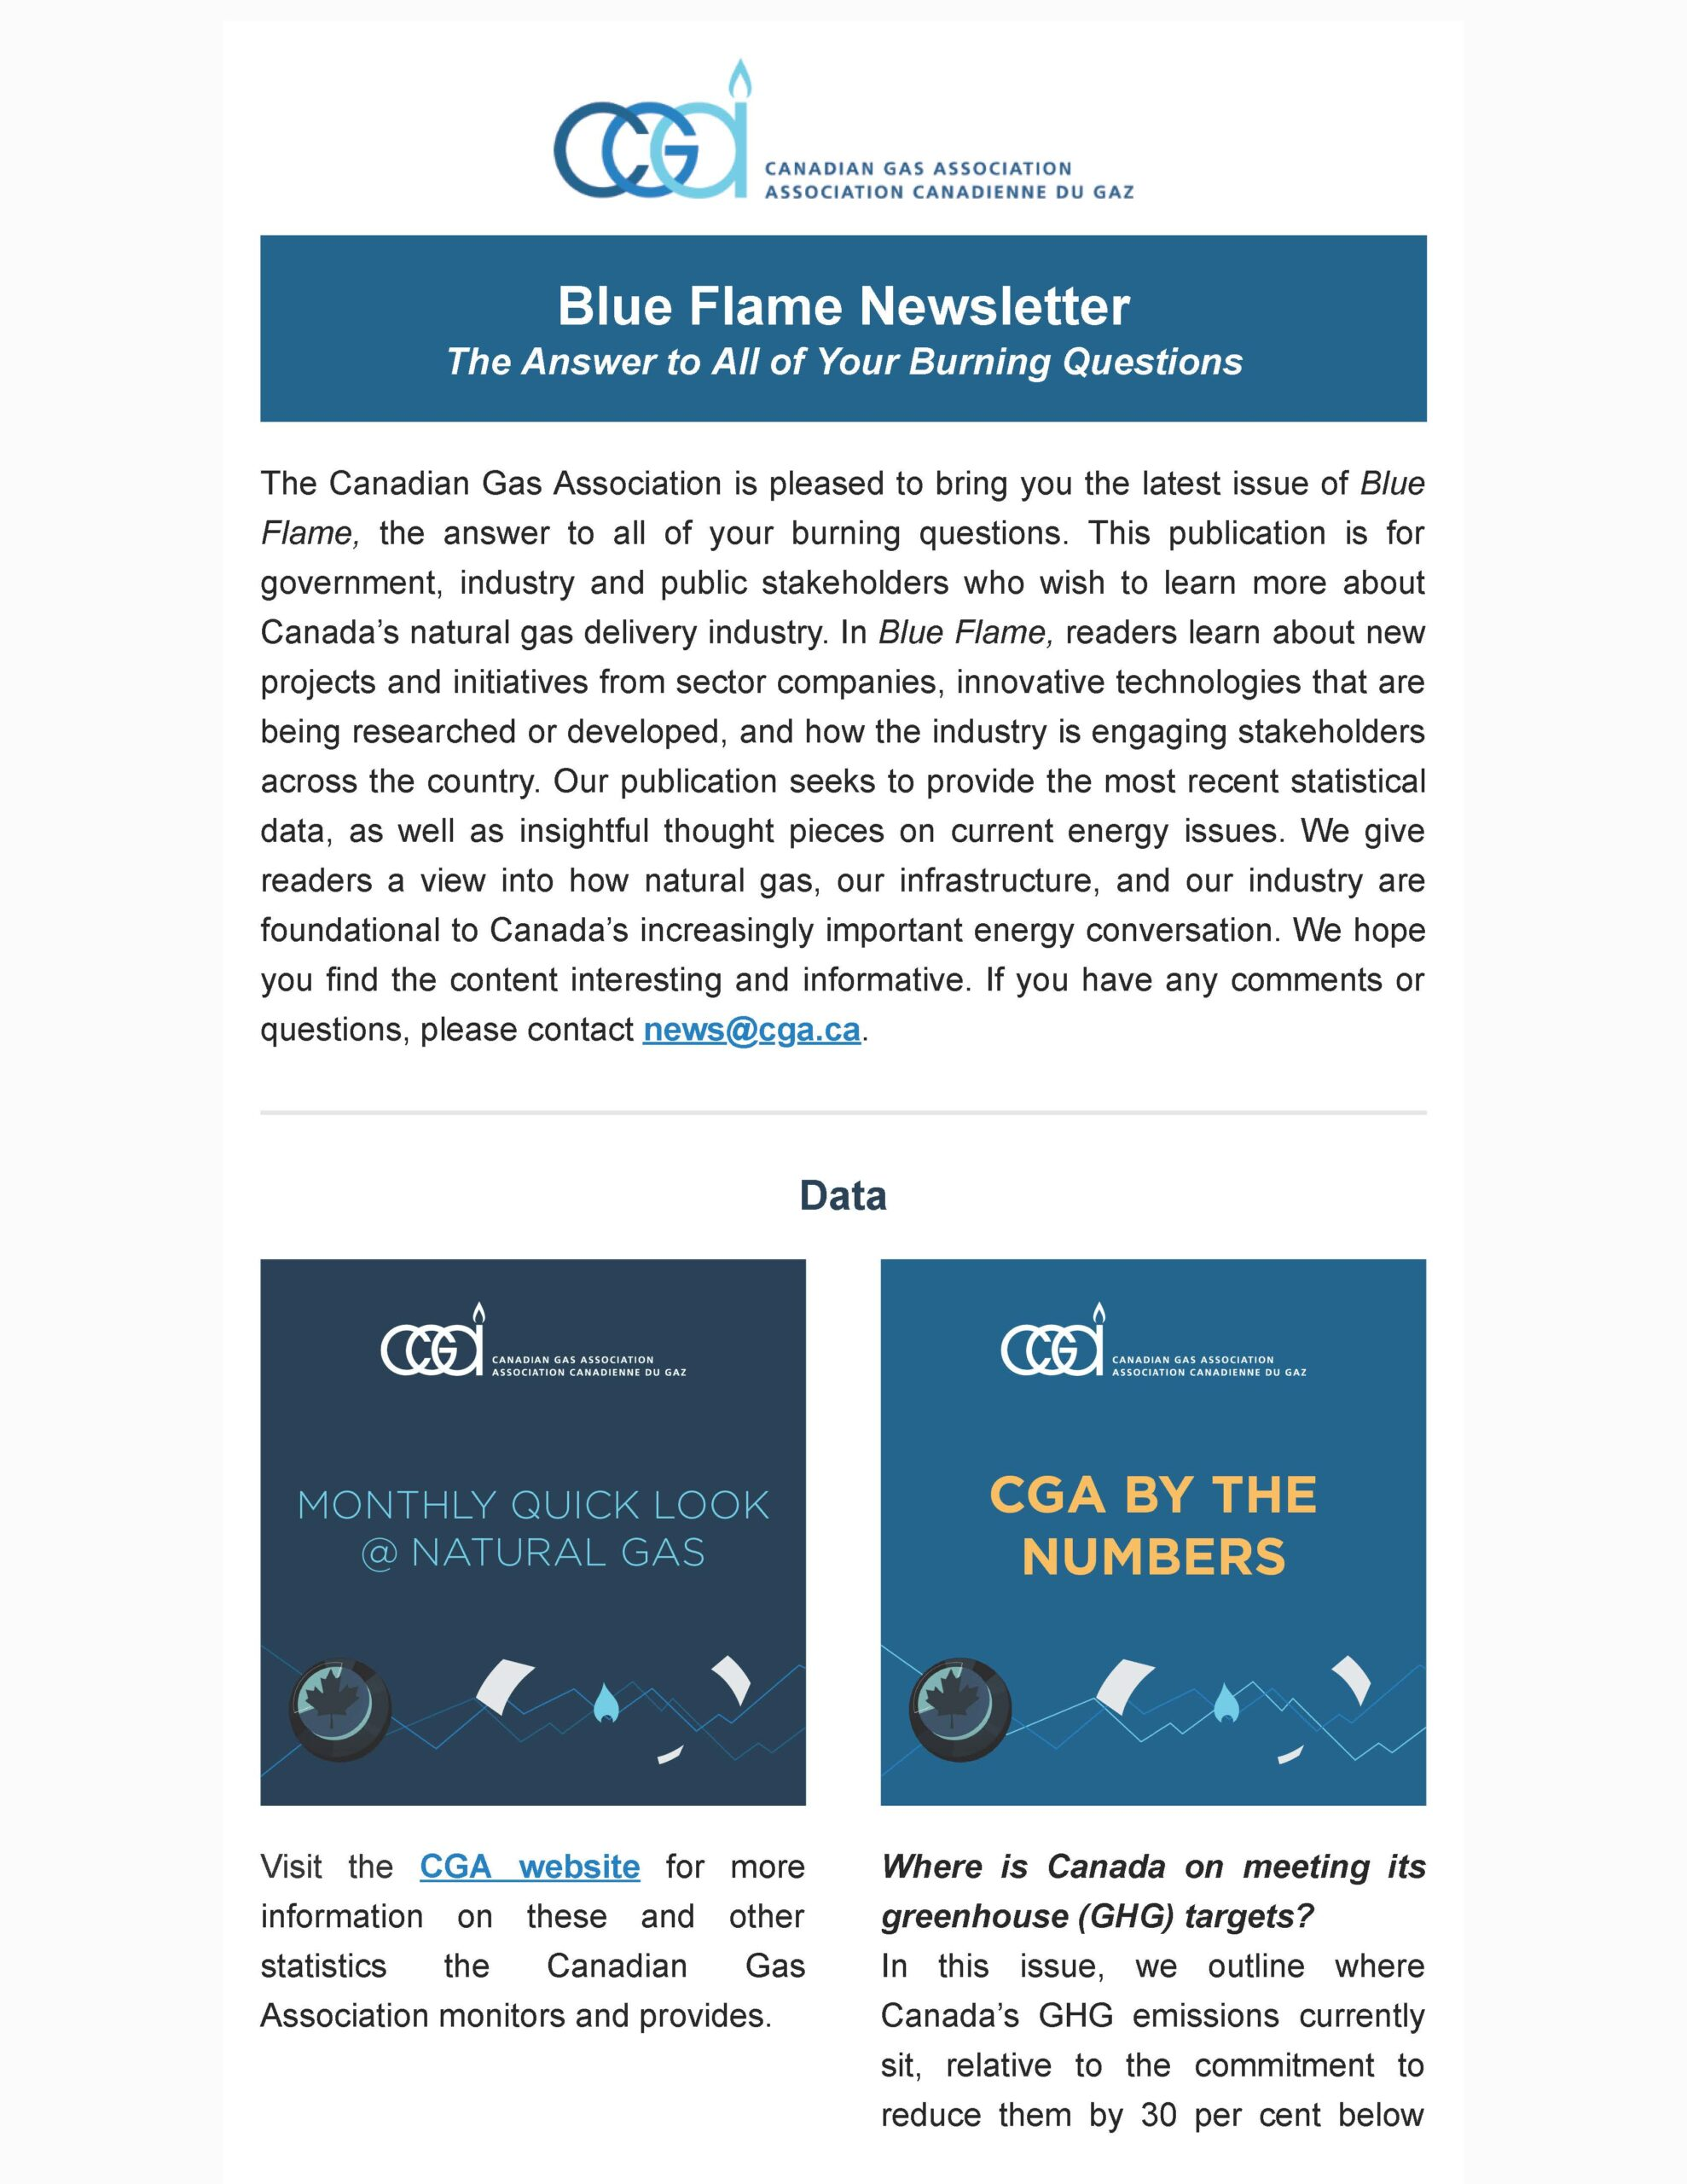 Blue Flame Newsletter issue 6